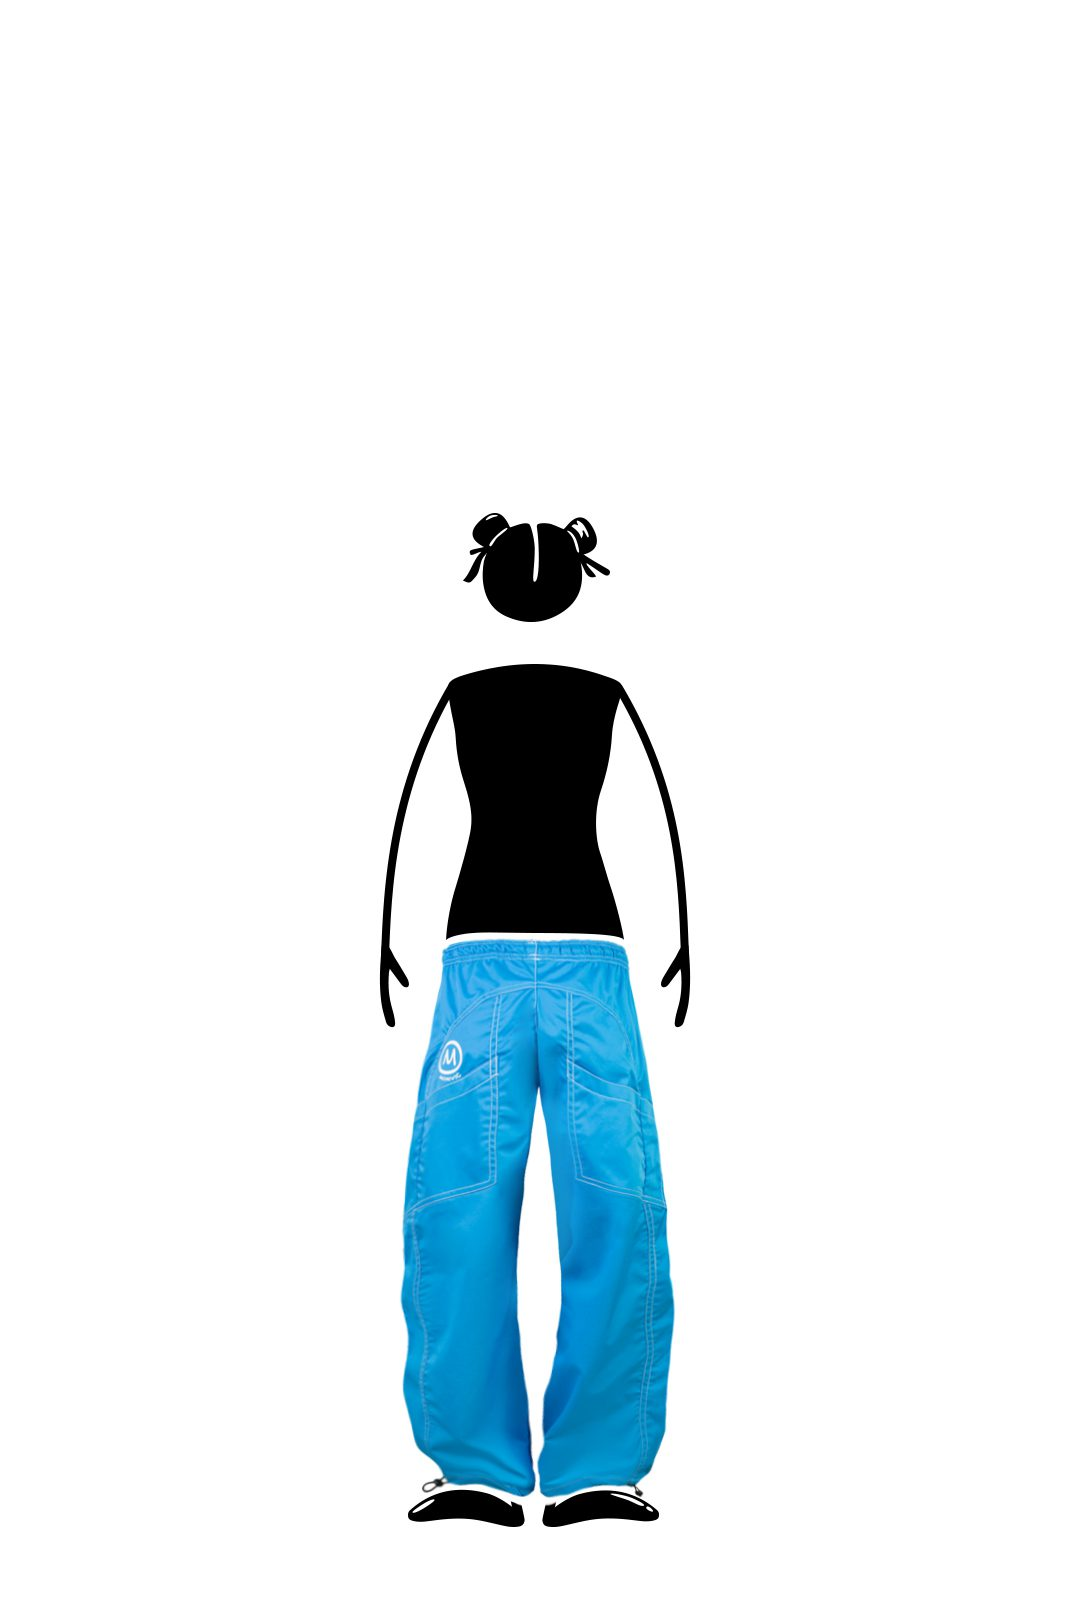 sport trousers for kids turquoise - stretch cotton - climbing and sport - MINI SPEED Monvic